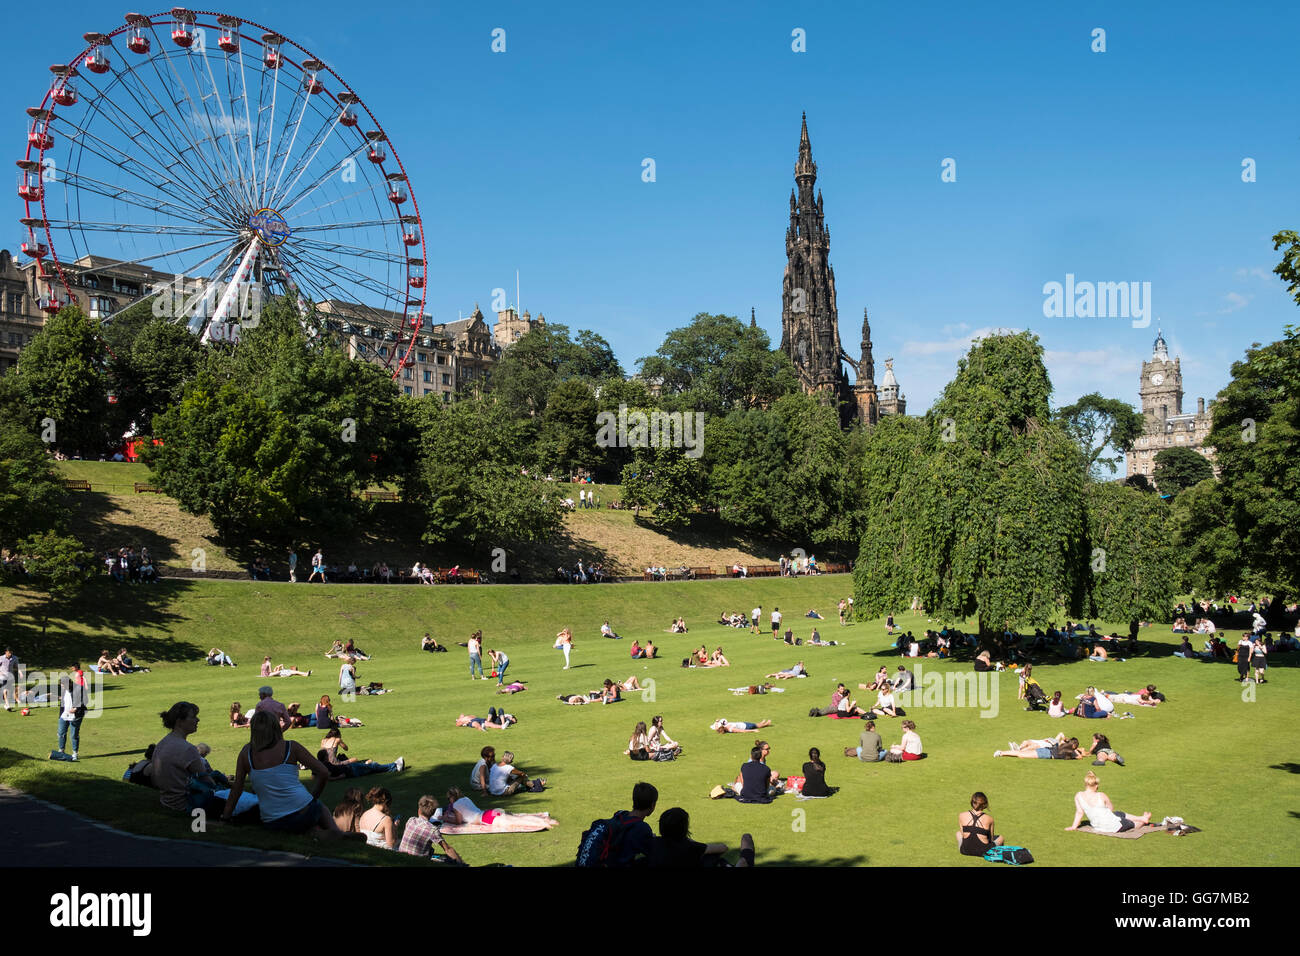 Summer hot weather brings many people into Princes Street Gardens in Edinburgh, Scotland, United Kingdom - Stock Image